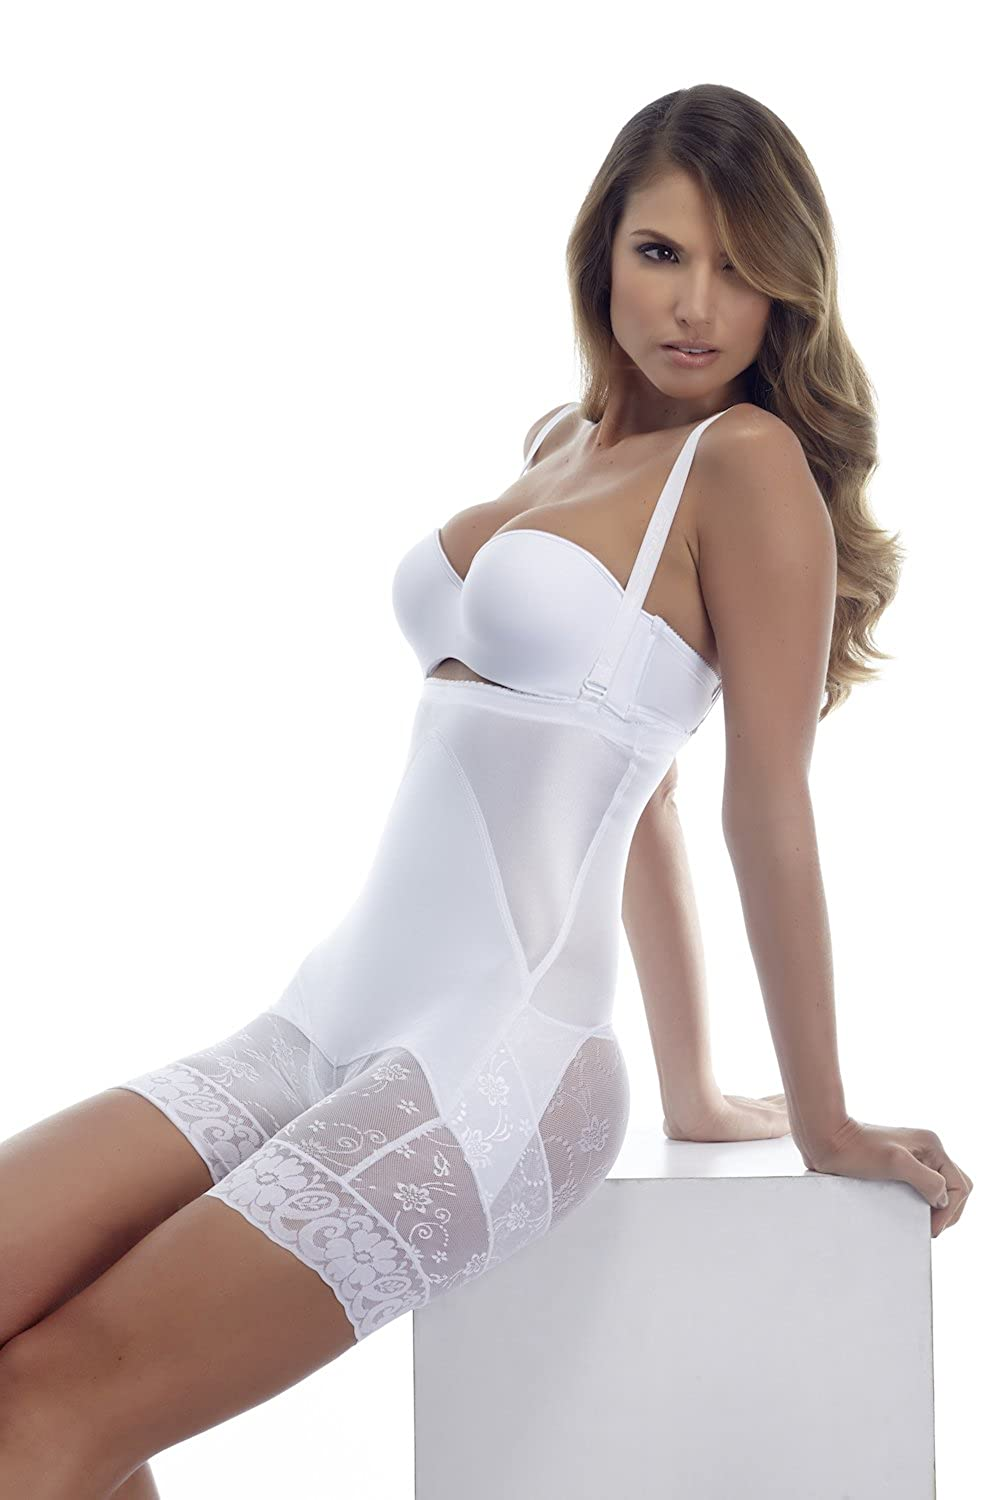 Control Bride Womens Fajas Colombianas Strapless Girdle Bride Wedding Dress Shaper Faja para Vestido de Novia 081651 at Amazon Womens Clothing store: